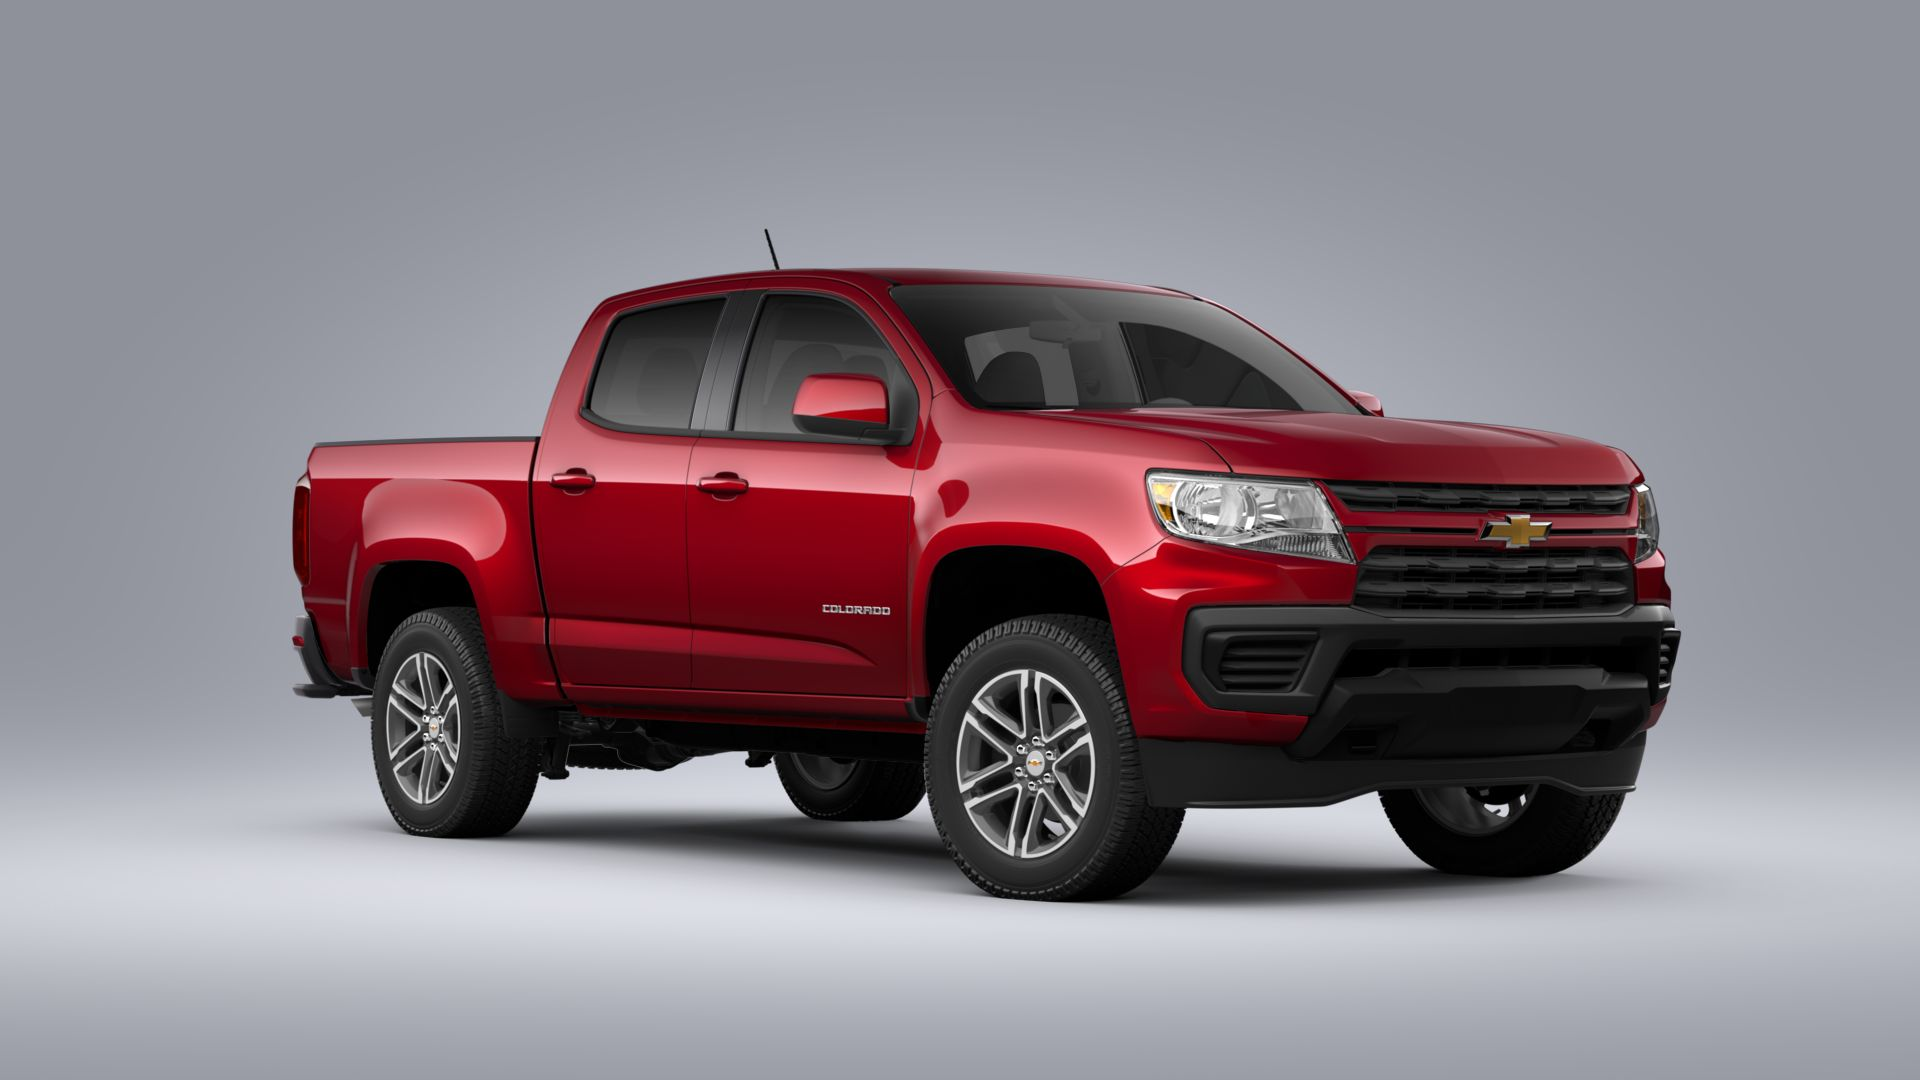 New 2021 Chevrolet Colorado WT REAR WHEEL DRIVE Crew Cab